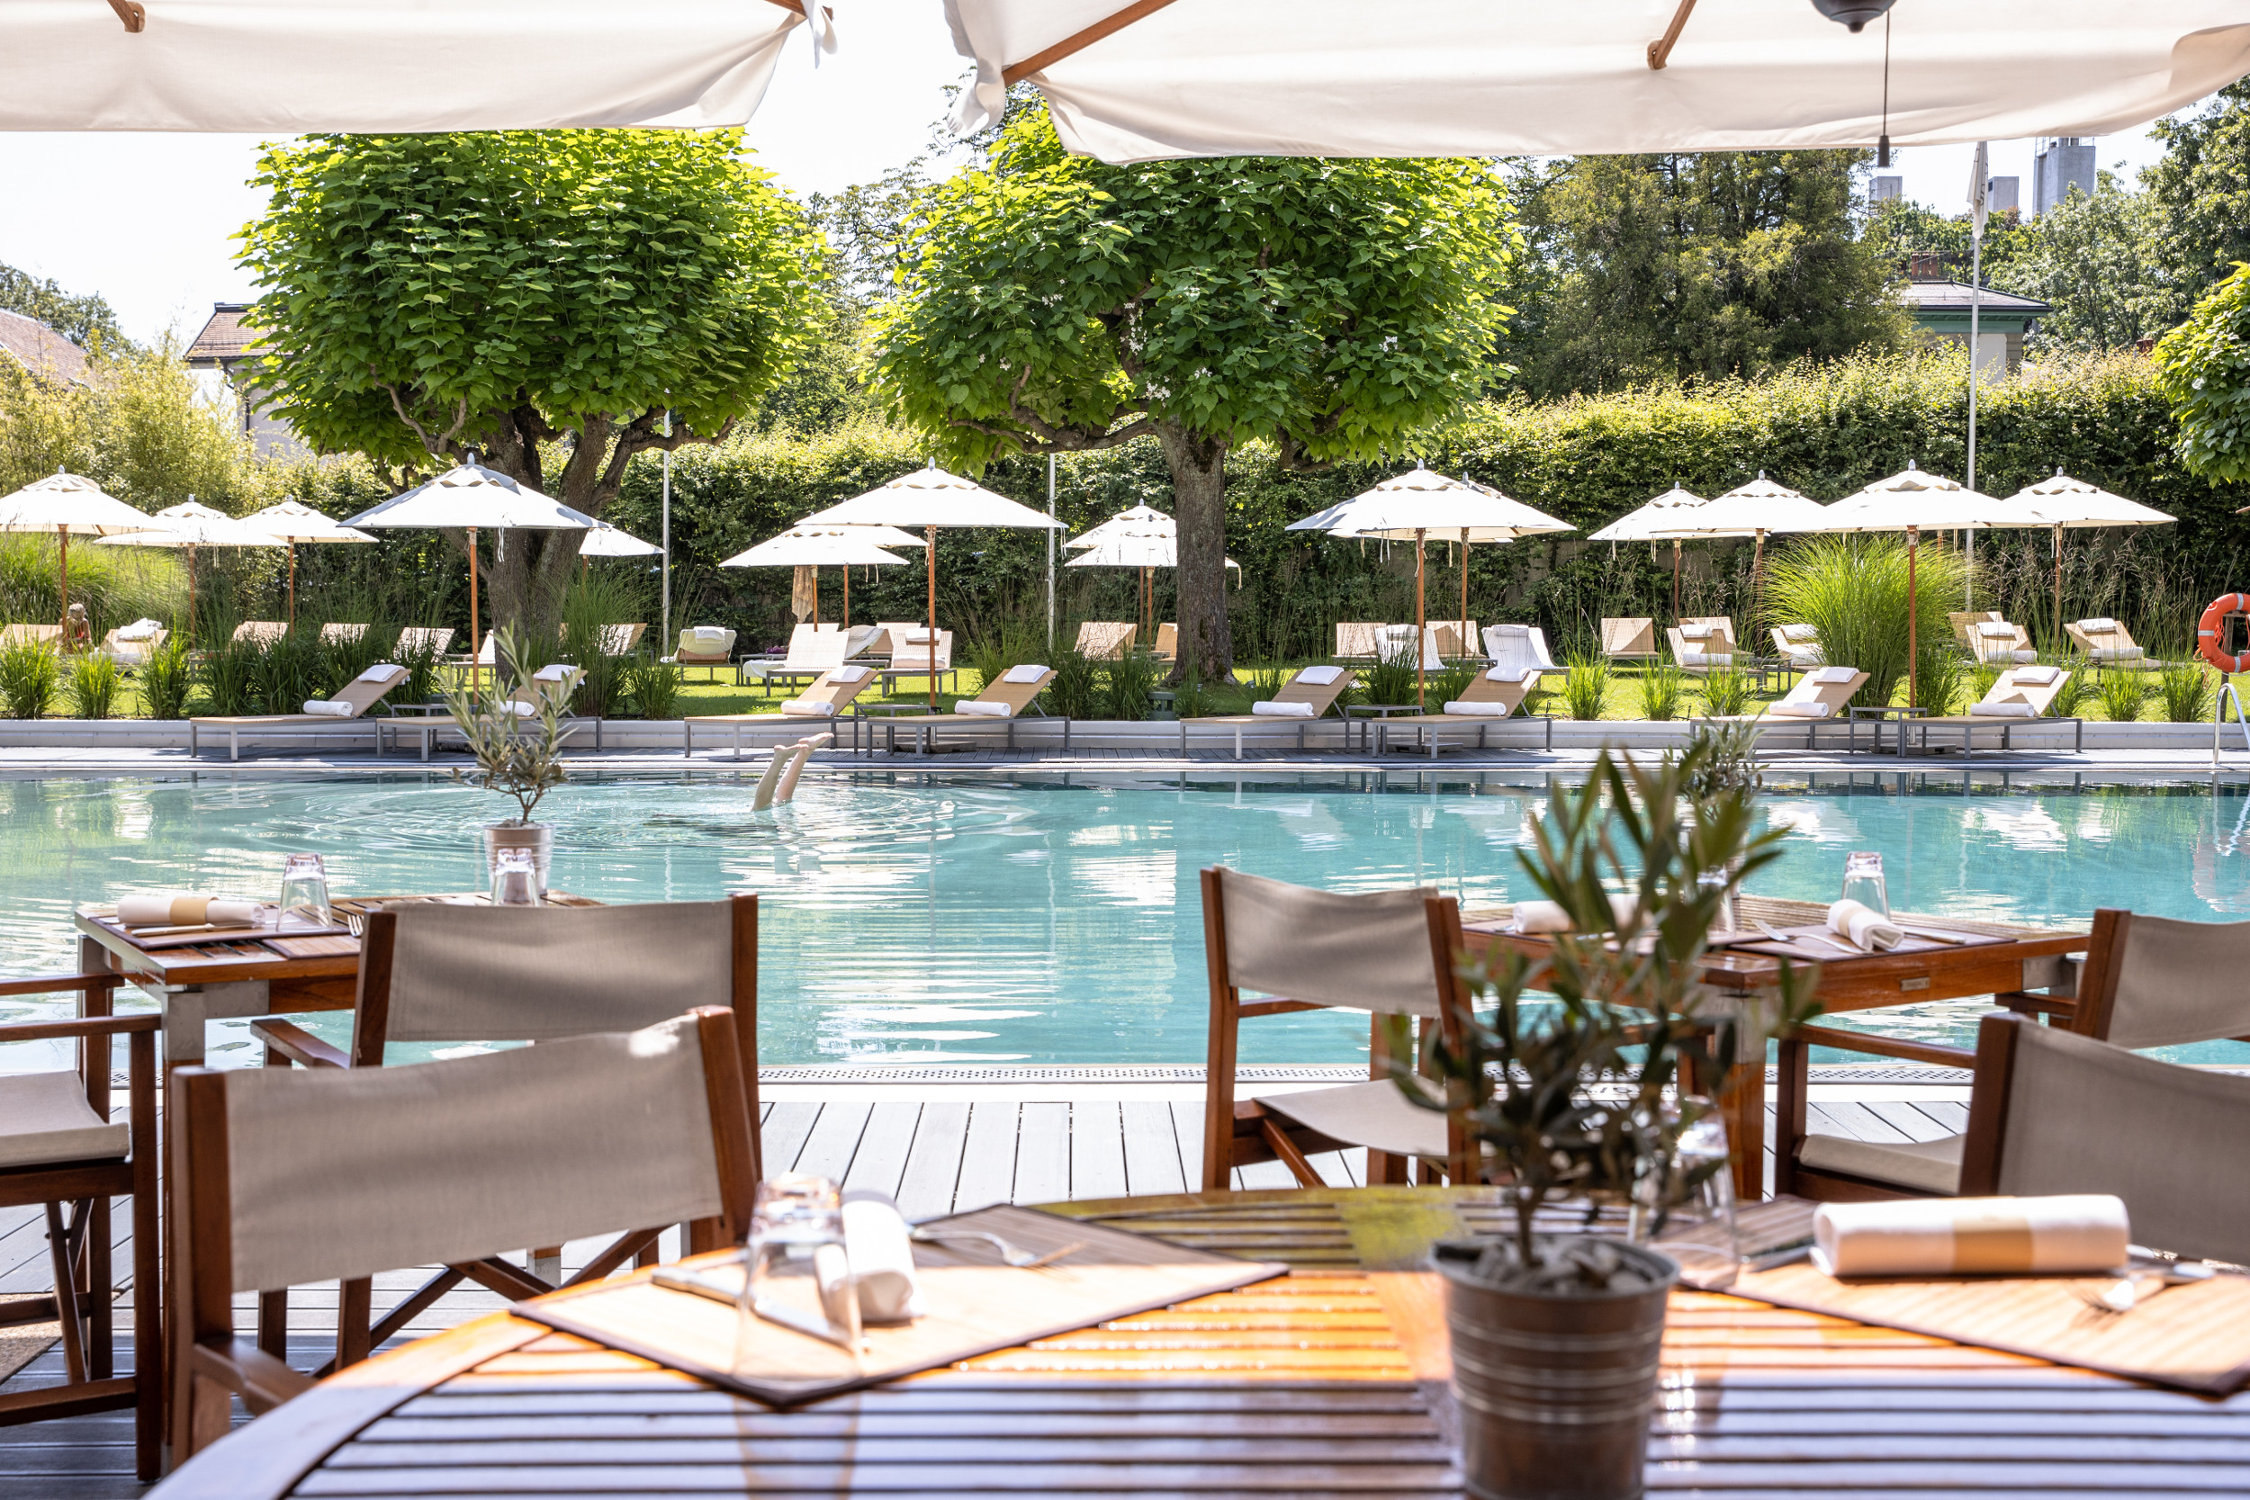 InterContinental-Geneva-Hotel-Poolside-restaurant-3